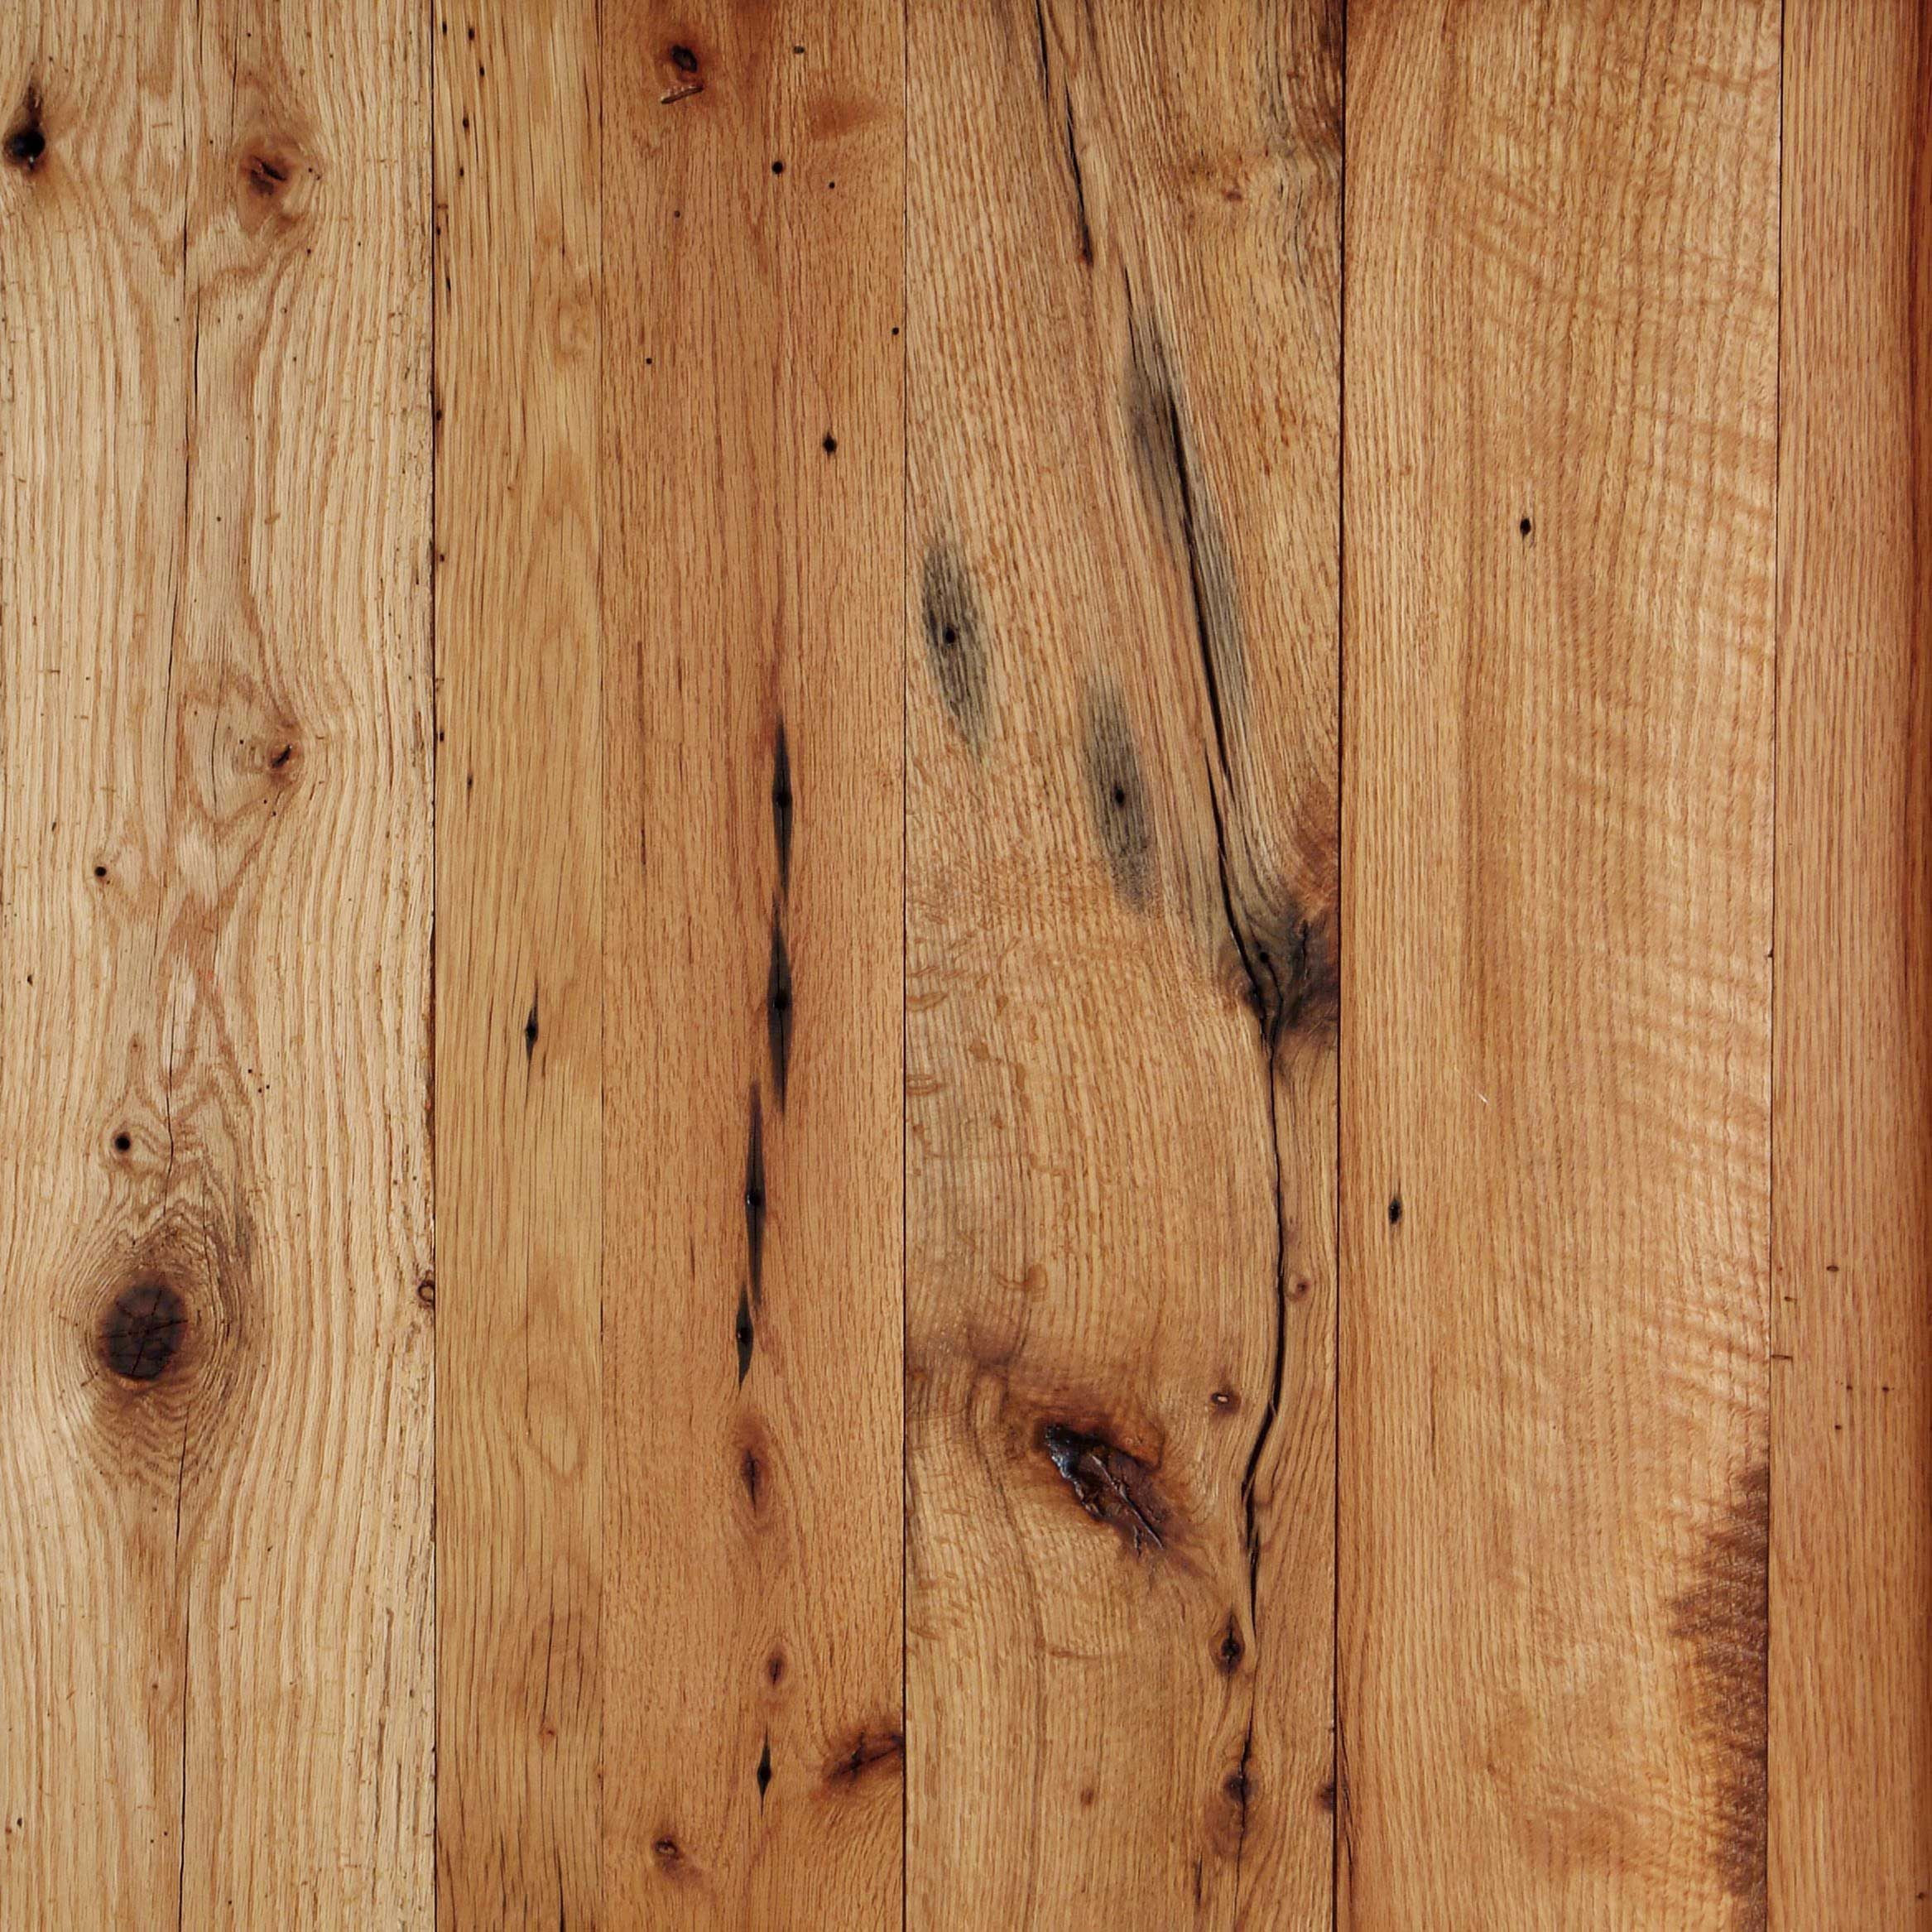 1 1 2 inch unfinished hardwood flooring of reclaimed salvaged antique red oak flooring wide boards knots throughout reclaimed salvaged antique red oak flooring wide boards knots